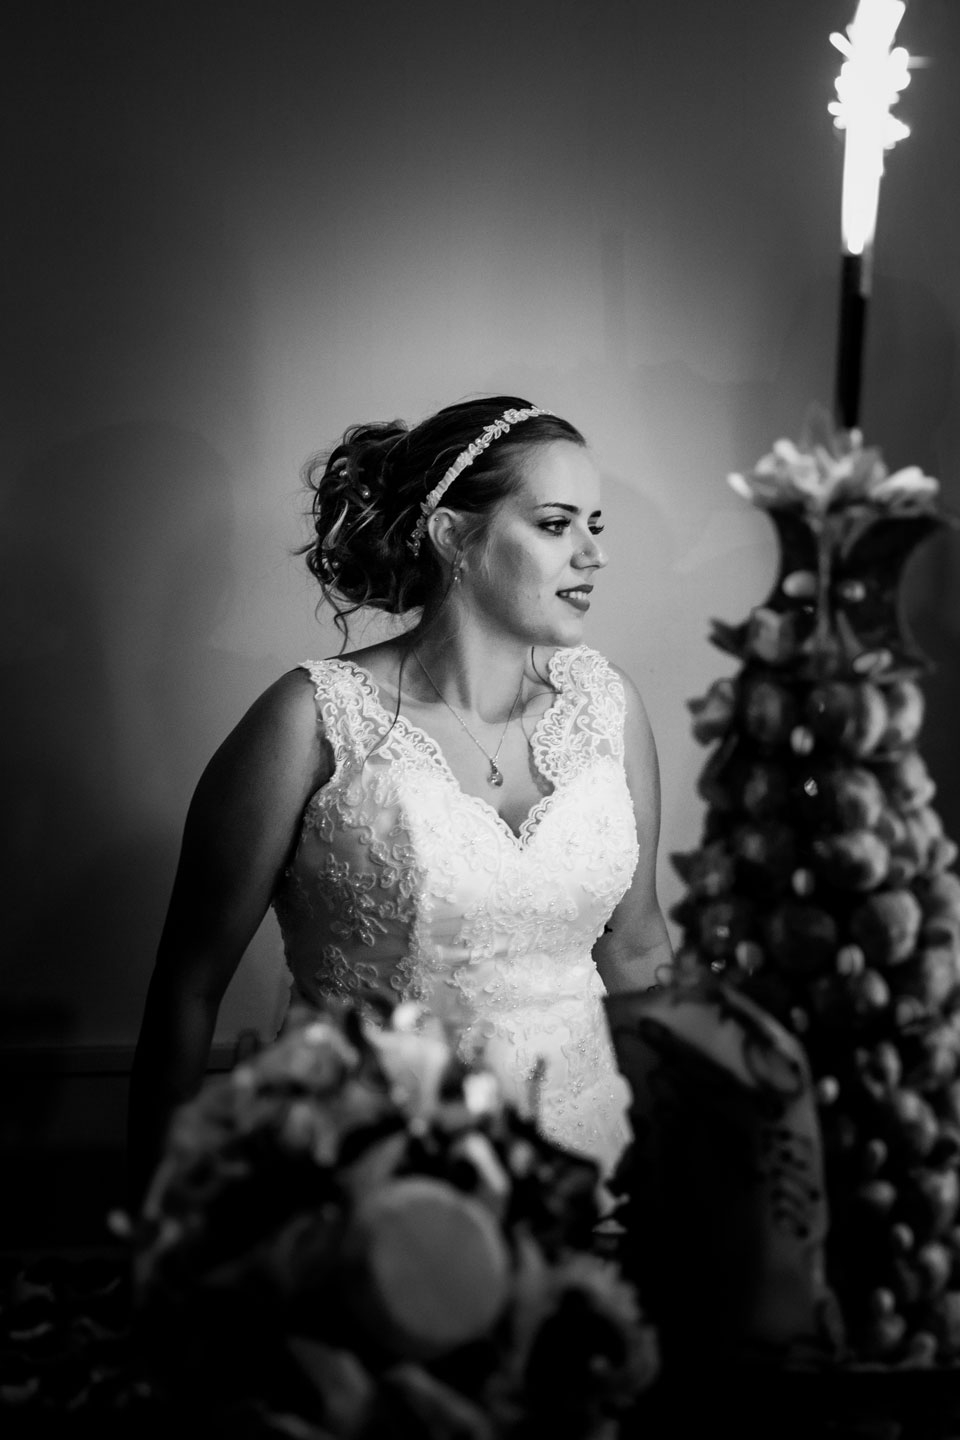 20200912-mariage-ophelie-alexandre-097